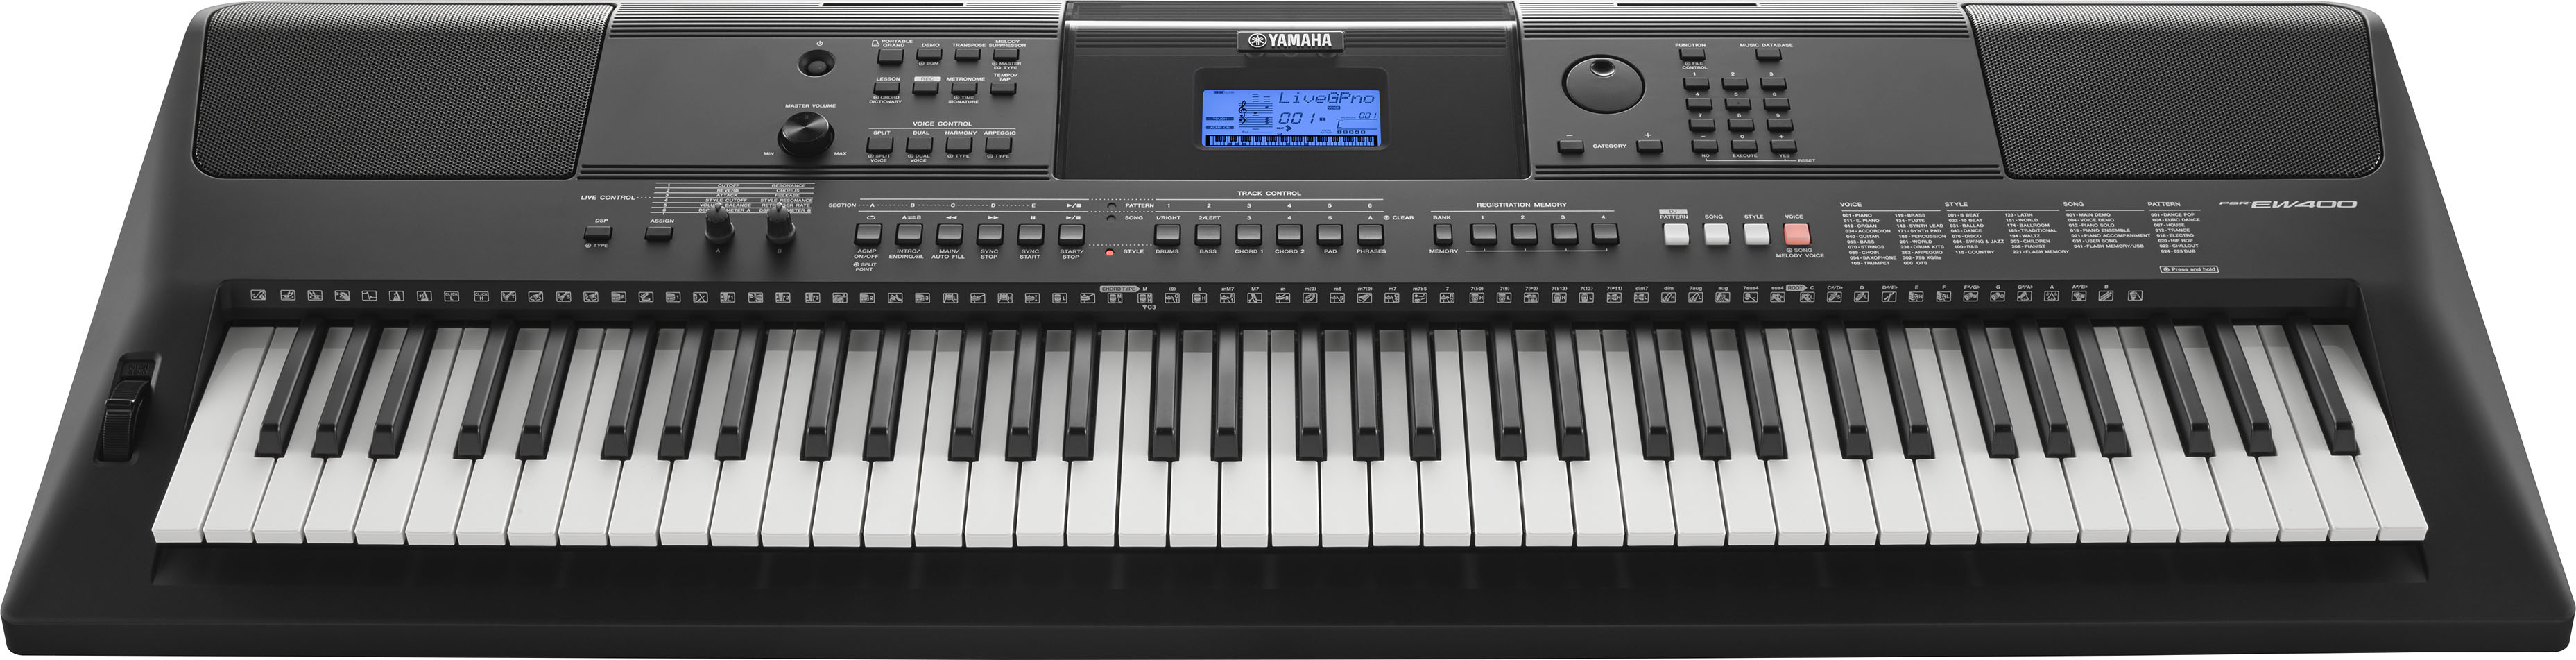 Yamaha psr e453 and psr ew400 portable keyboards boast for Yamaha psr ew